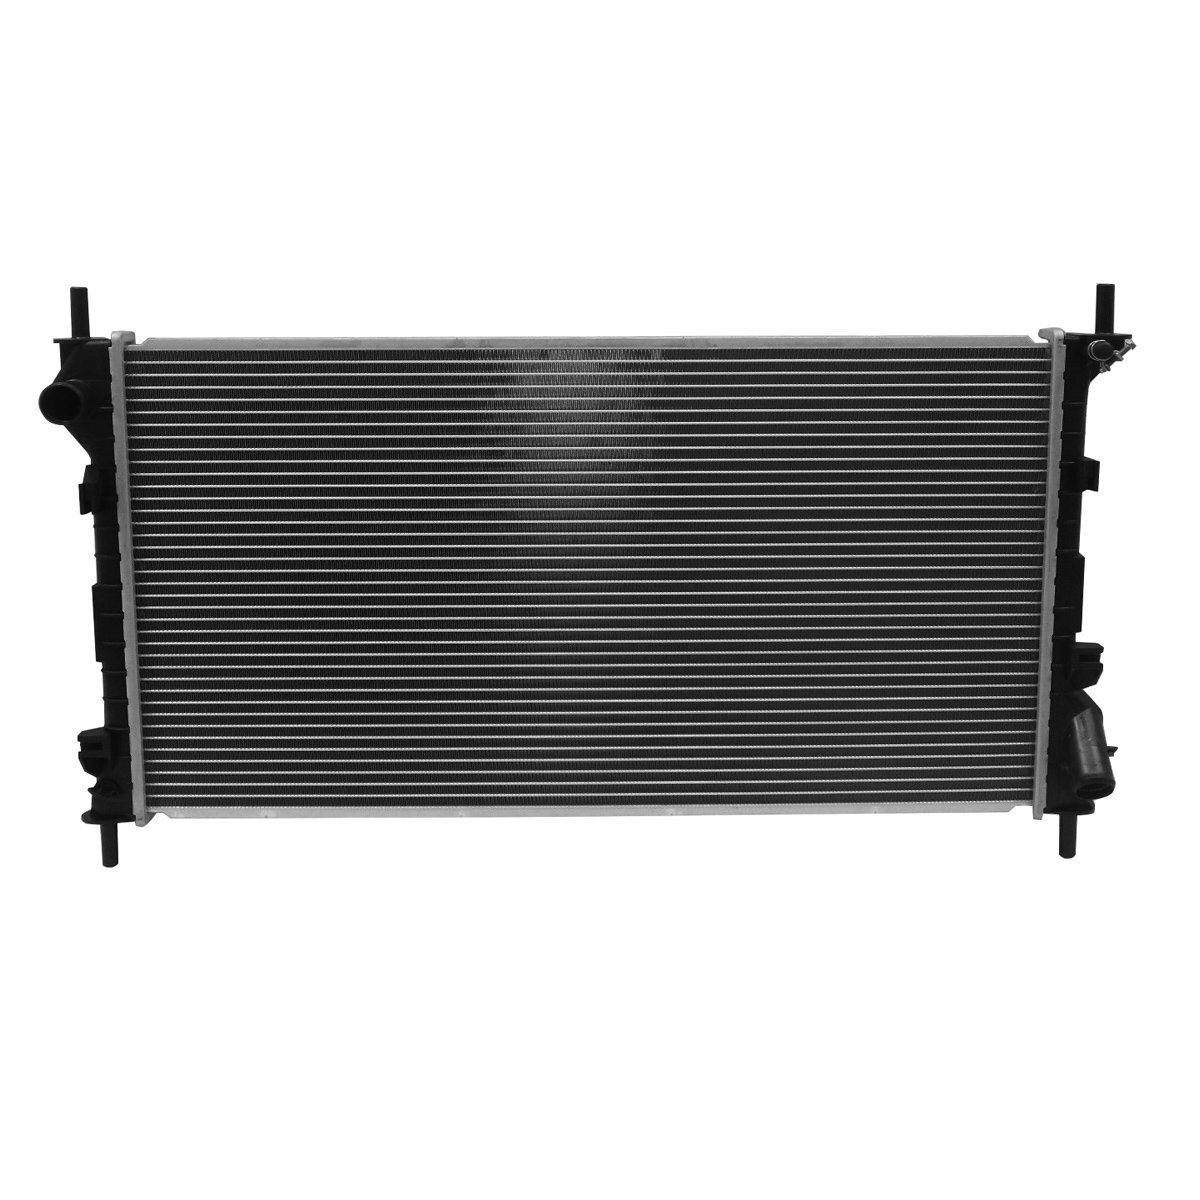 ECCPP Radiator 13184 for 2010-2012 Ford Transit Connect 2013 Ford Transit Base Standard Passenger Van 4-Door 2.2L 2.0L